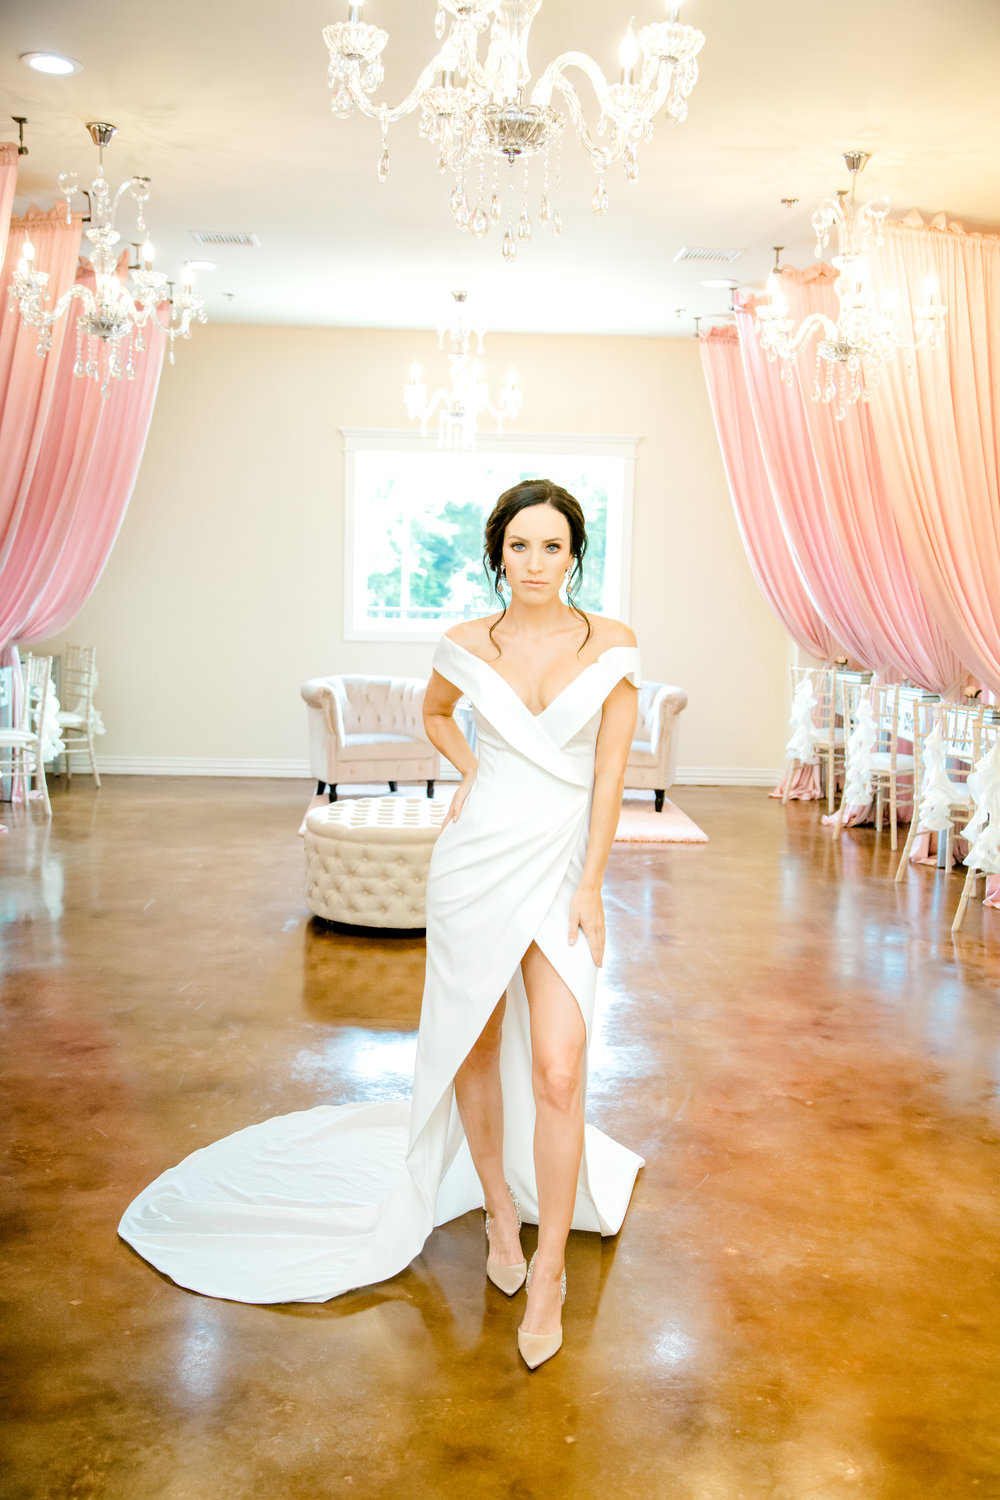 Sleek and sexy wedding dress from Stephen Grace Atelier | Hair and Makeup by Kiss and makeup Houston